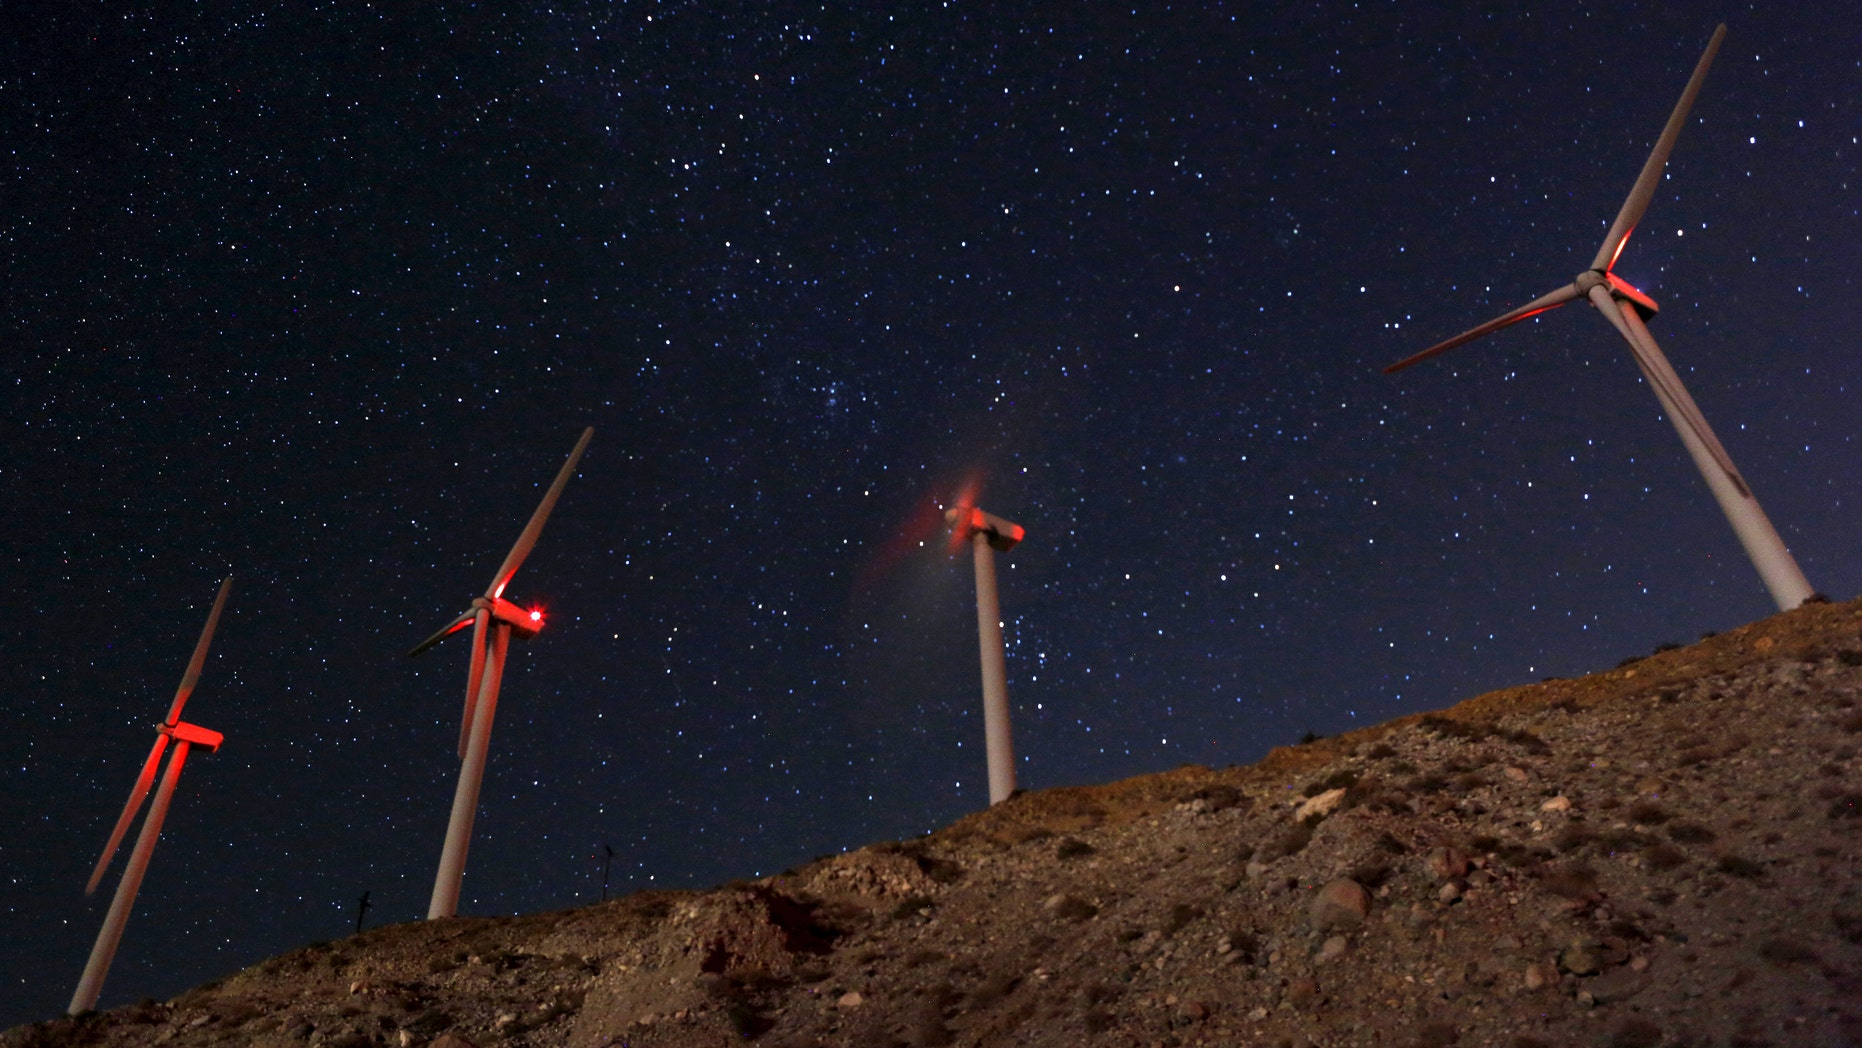 A meteor (top L) speeds past windmills at the San Gregornio Pass Wind Farm near Whitewater, Calif., Aug. 13, 2015 during the annual Perseid meteor shower. (REUTERS/Sam Mircovich)